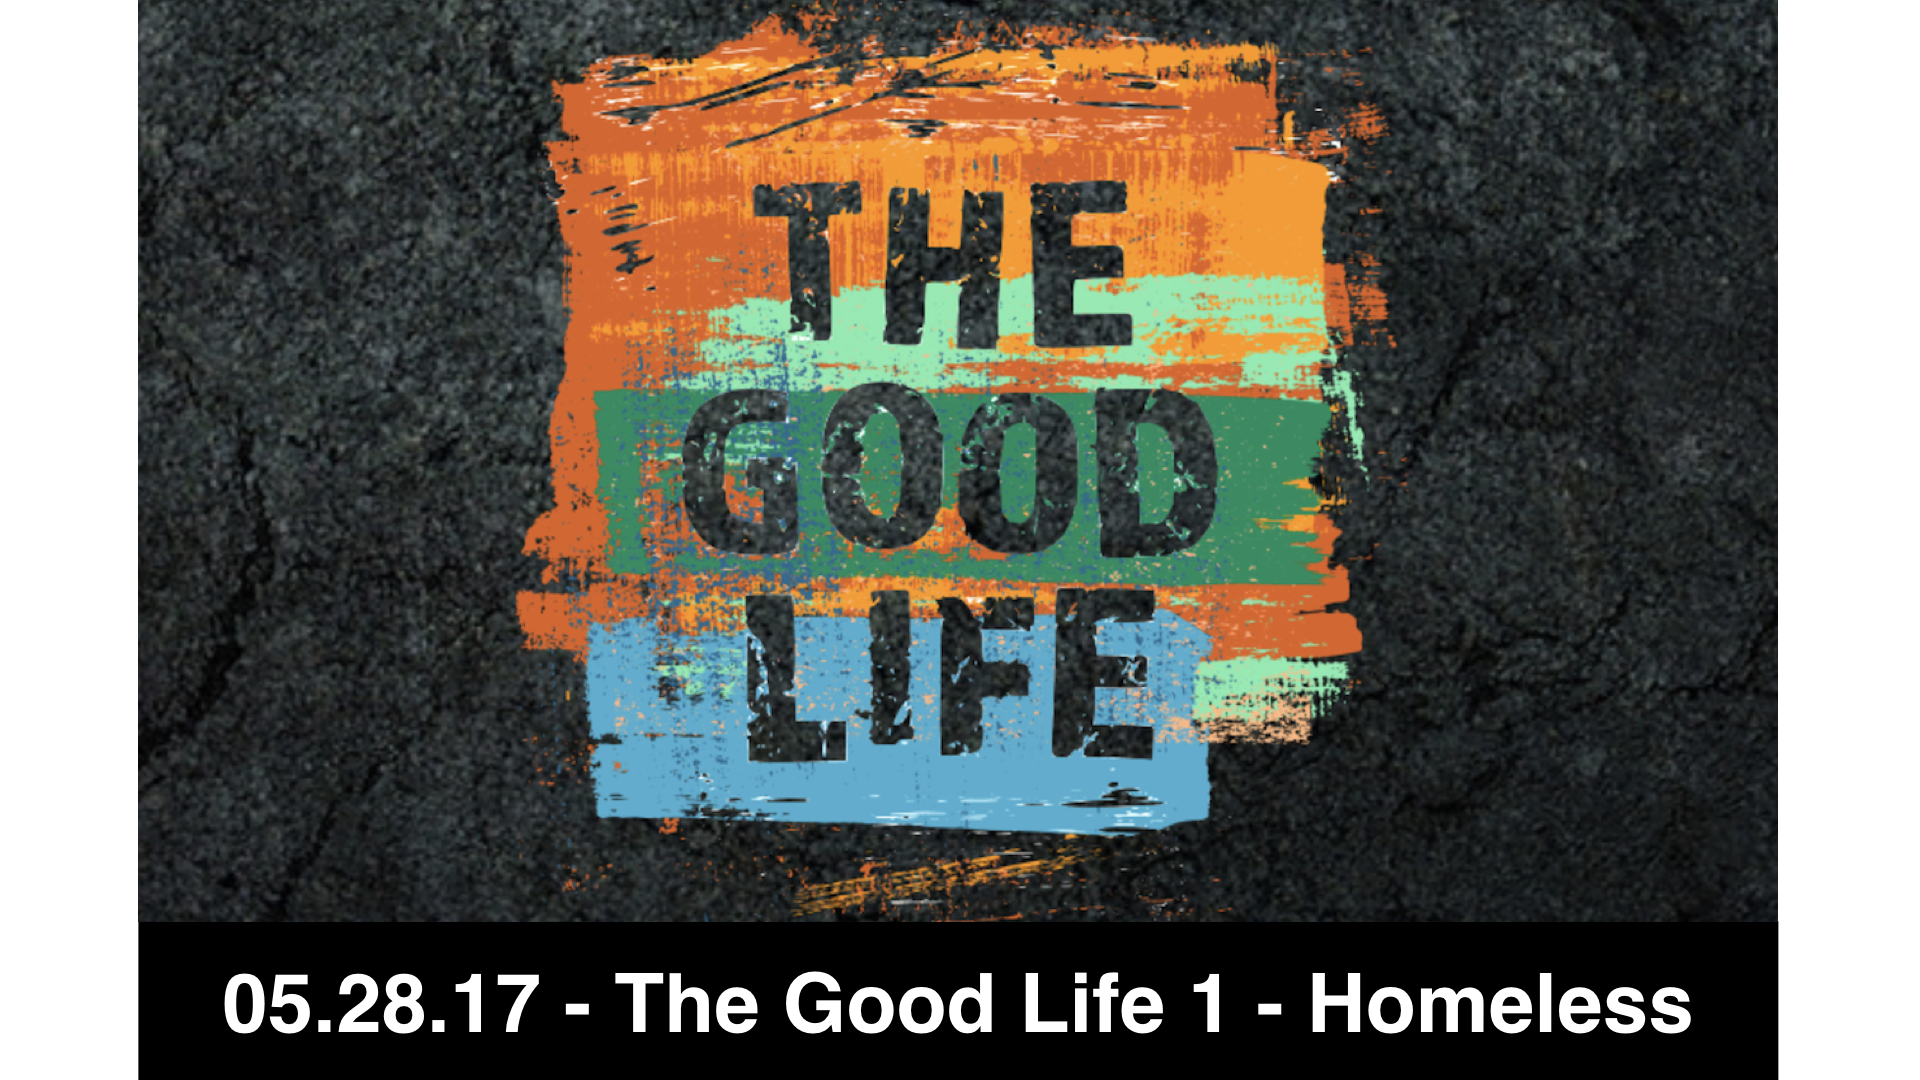 05.28.17 - The Good Life 1 - Homeless